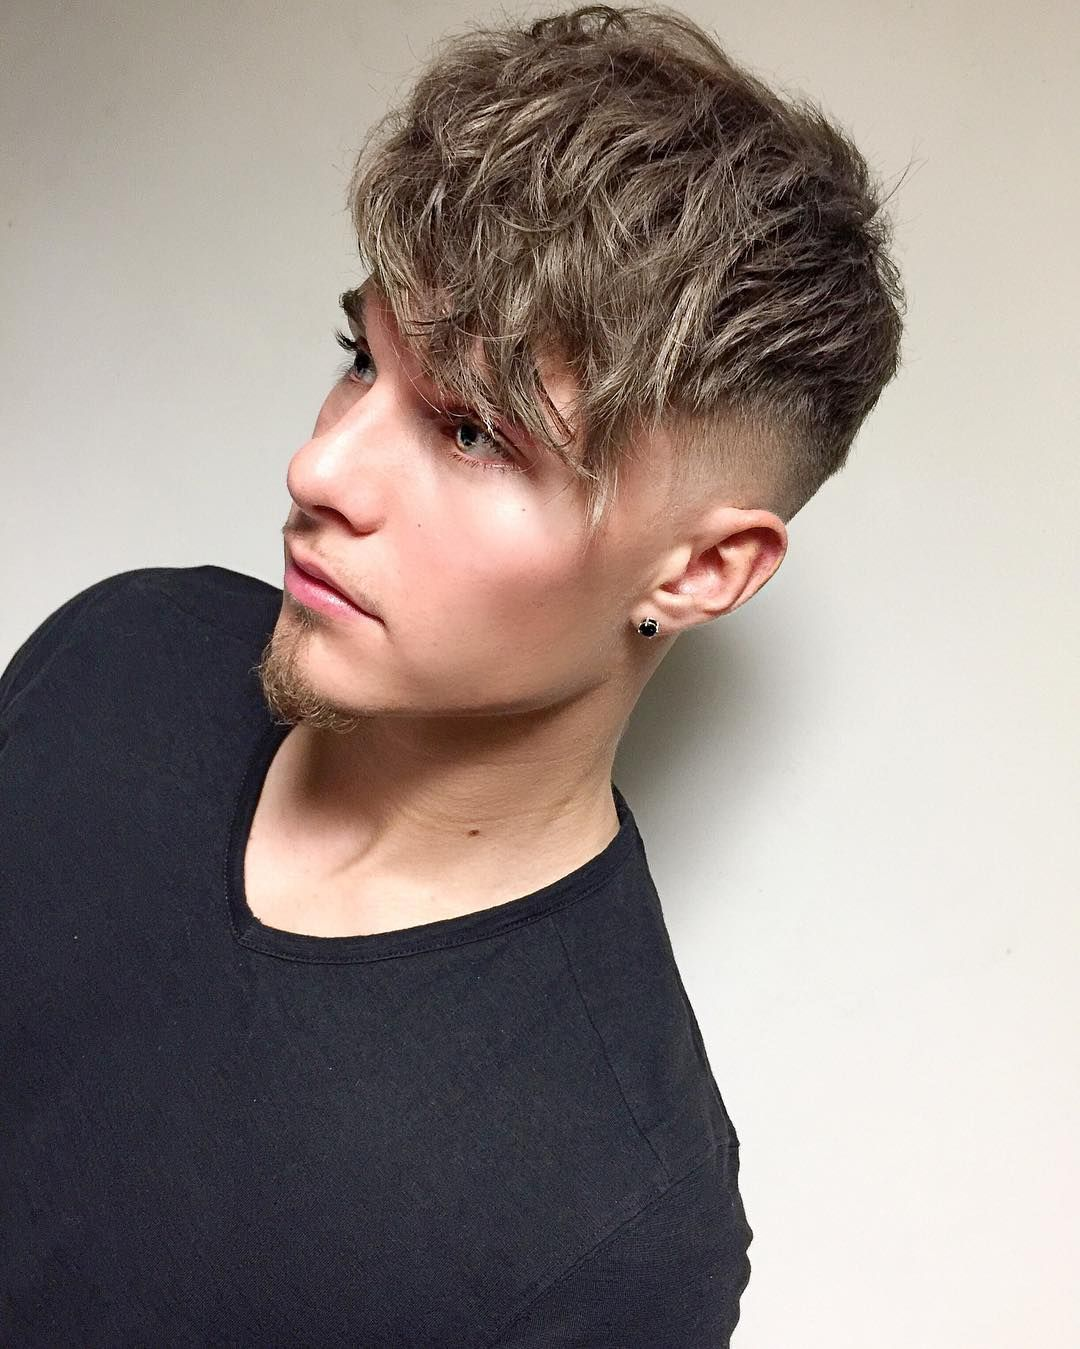 Mikeyyyyyyy Long Fringe Wavy Hair Short Sides Mens Hairstyle 2017 Menshairstyles Menshaircuts Mens Hairstyles Short Mens Hairstyles Square Face Hairstyles